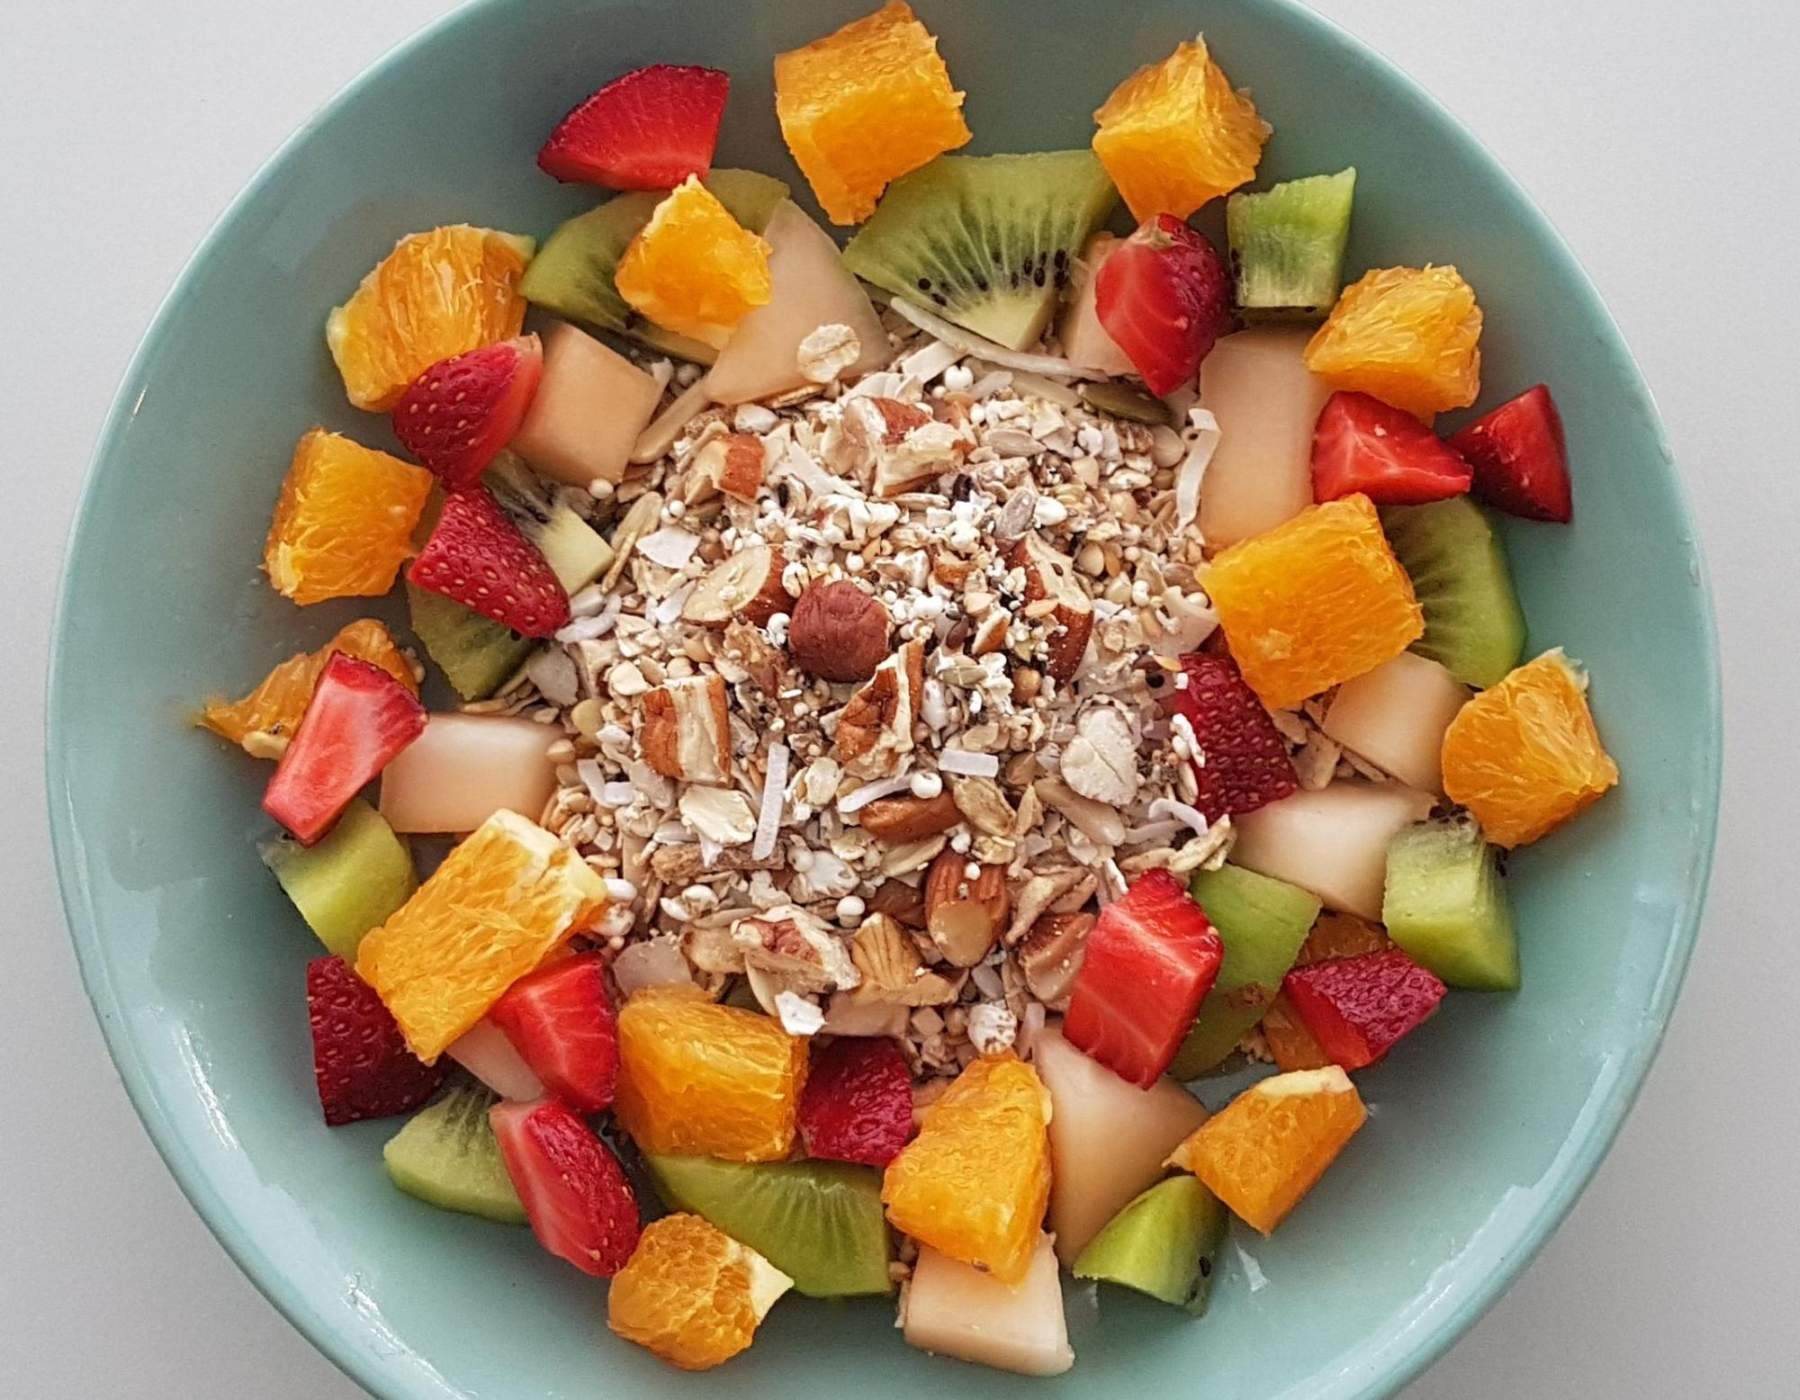 Home-made muesli with fresh fruit